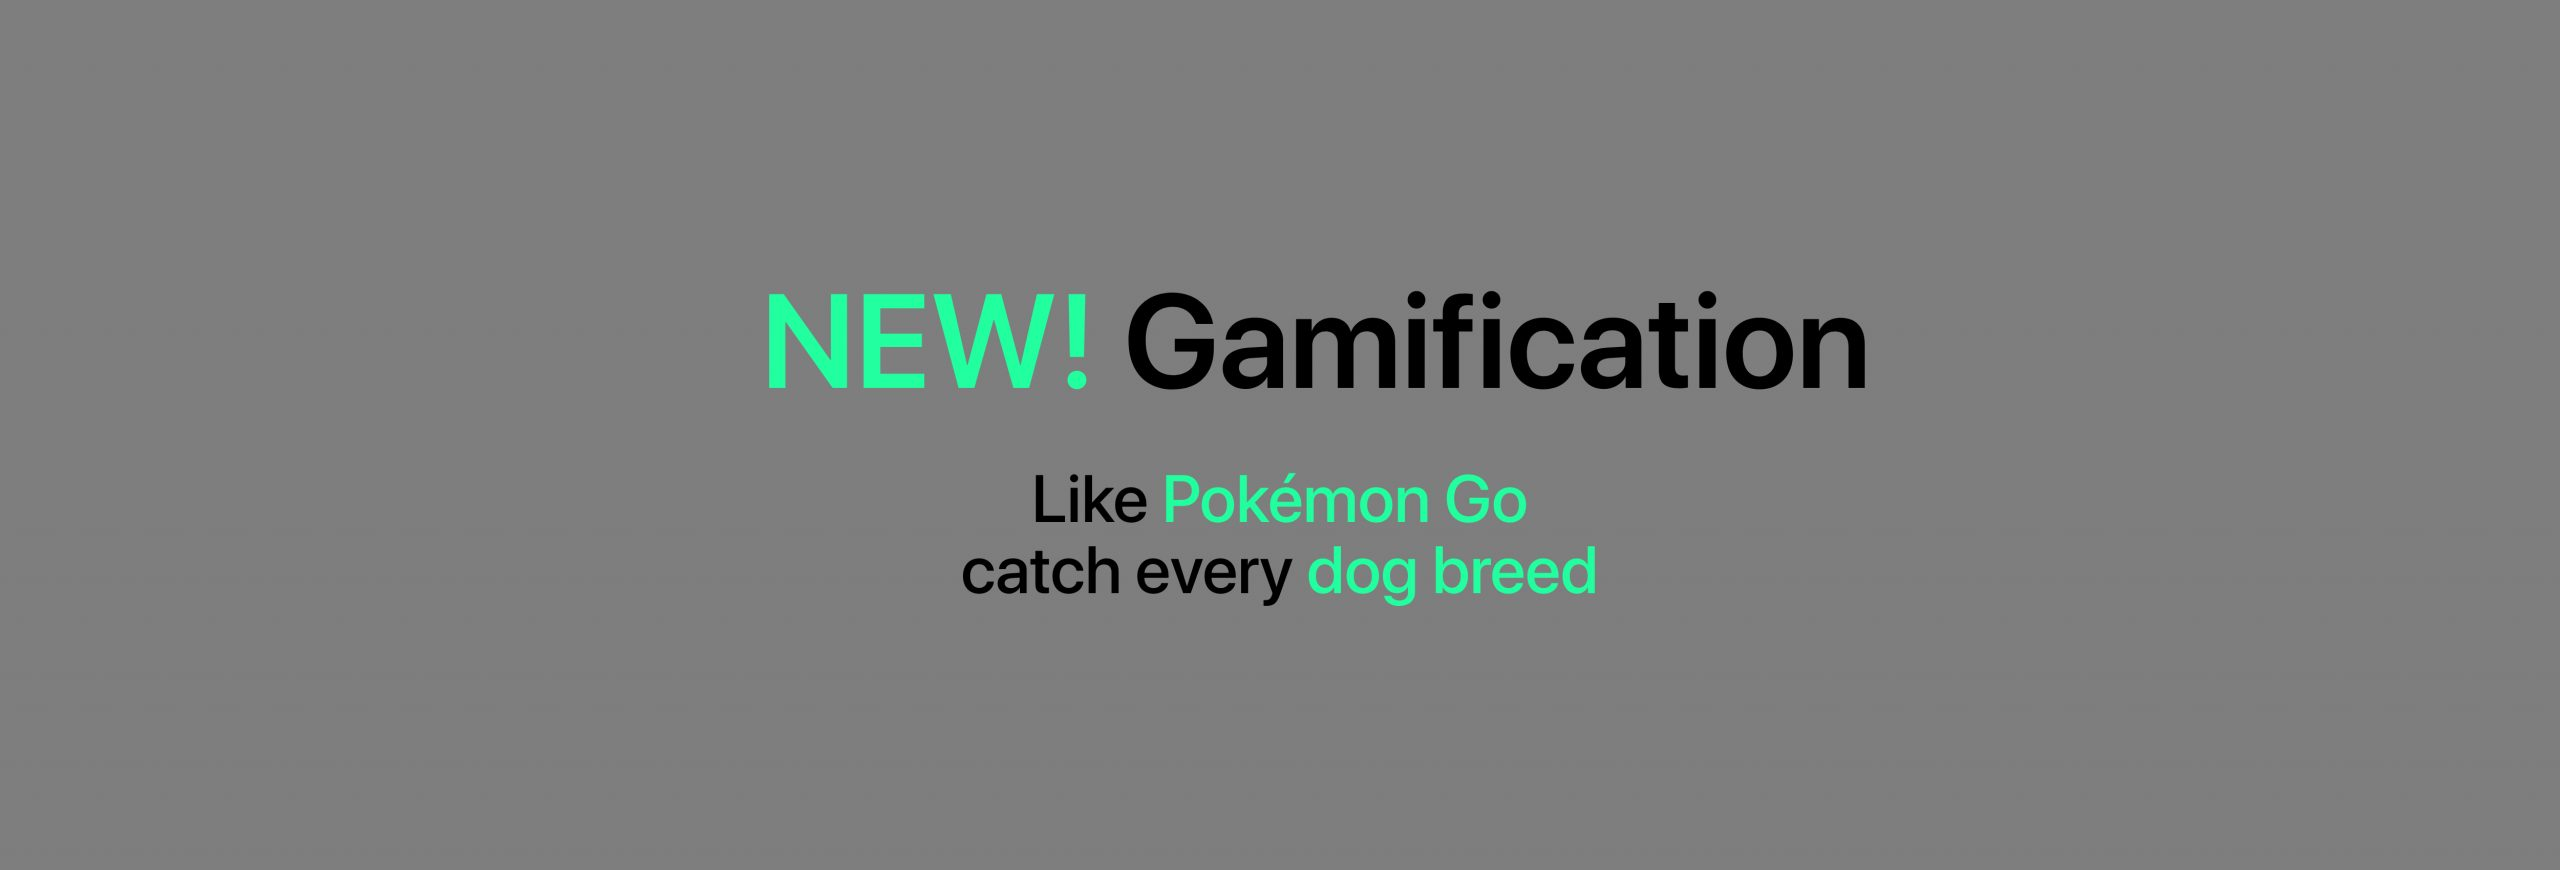 Gamification Update